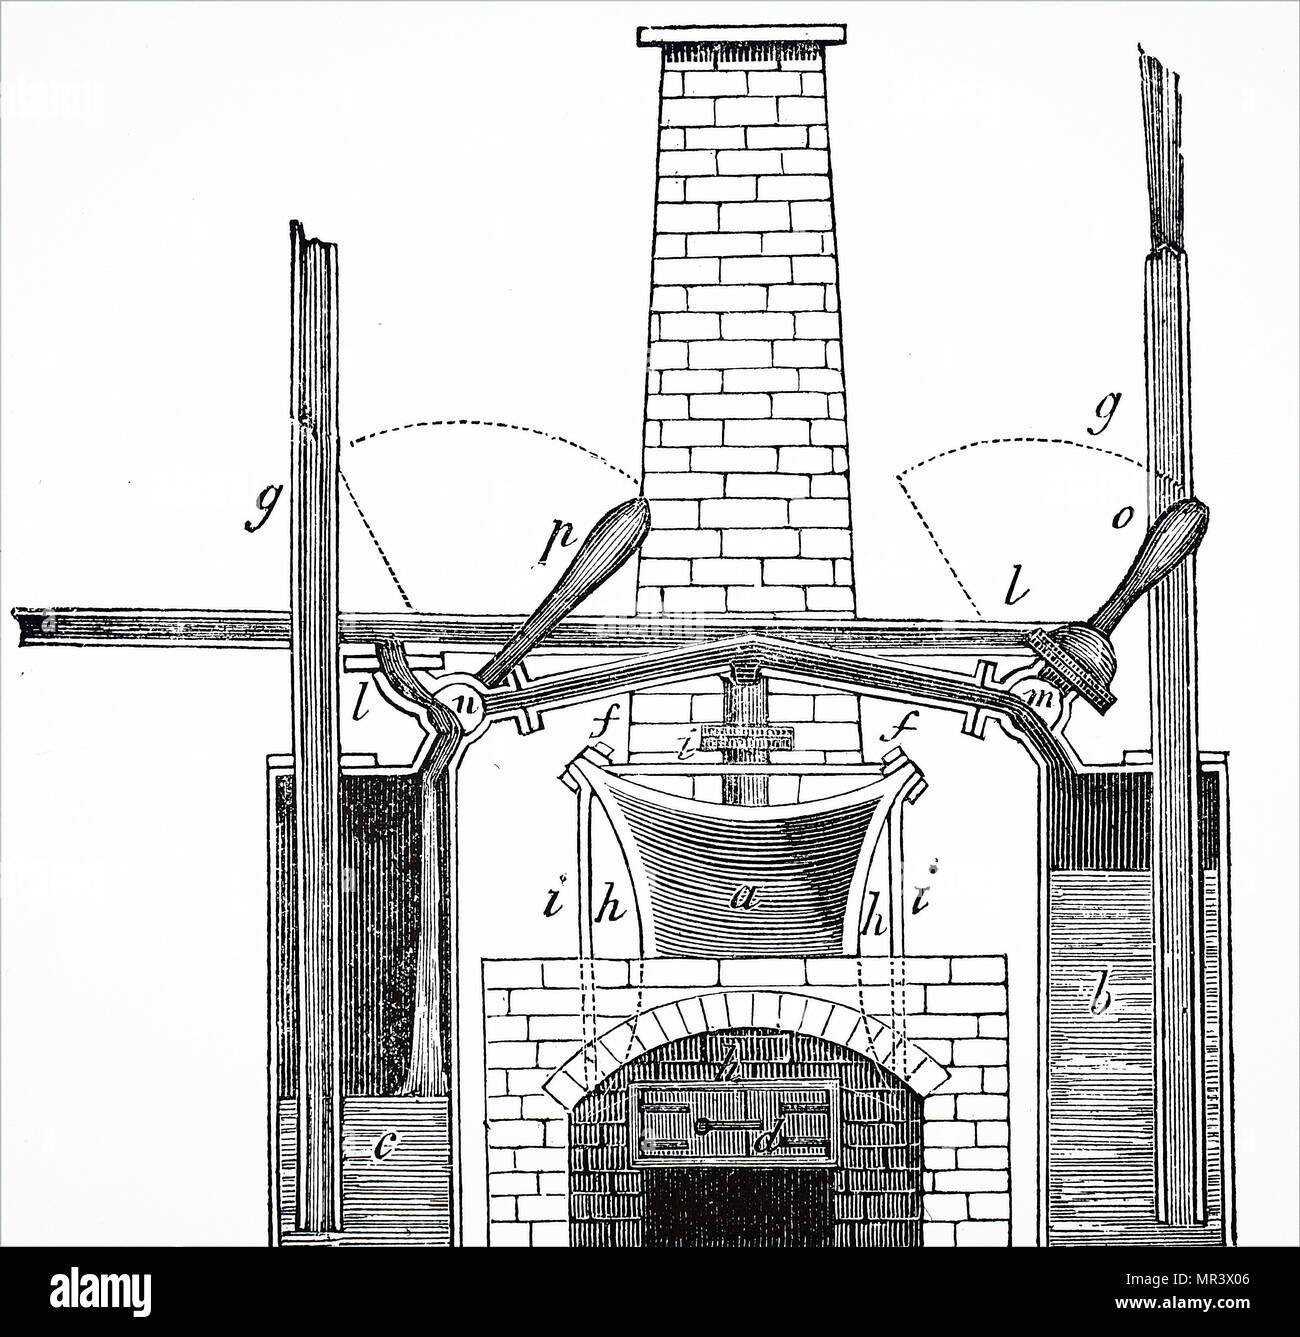 Diagram depicting the Marquess of Worcester's steam engine (1663) used for  raising water.